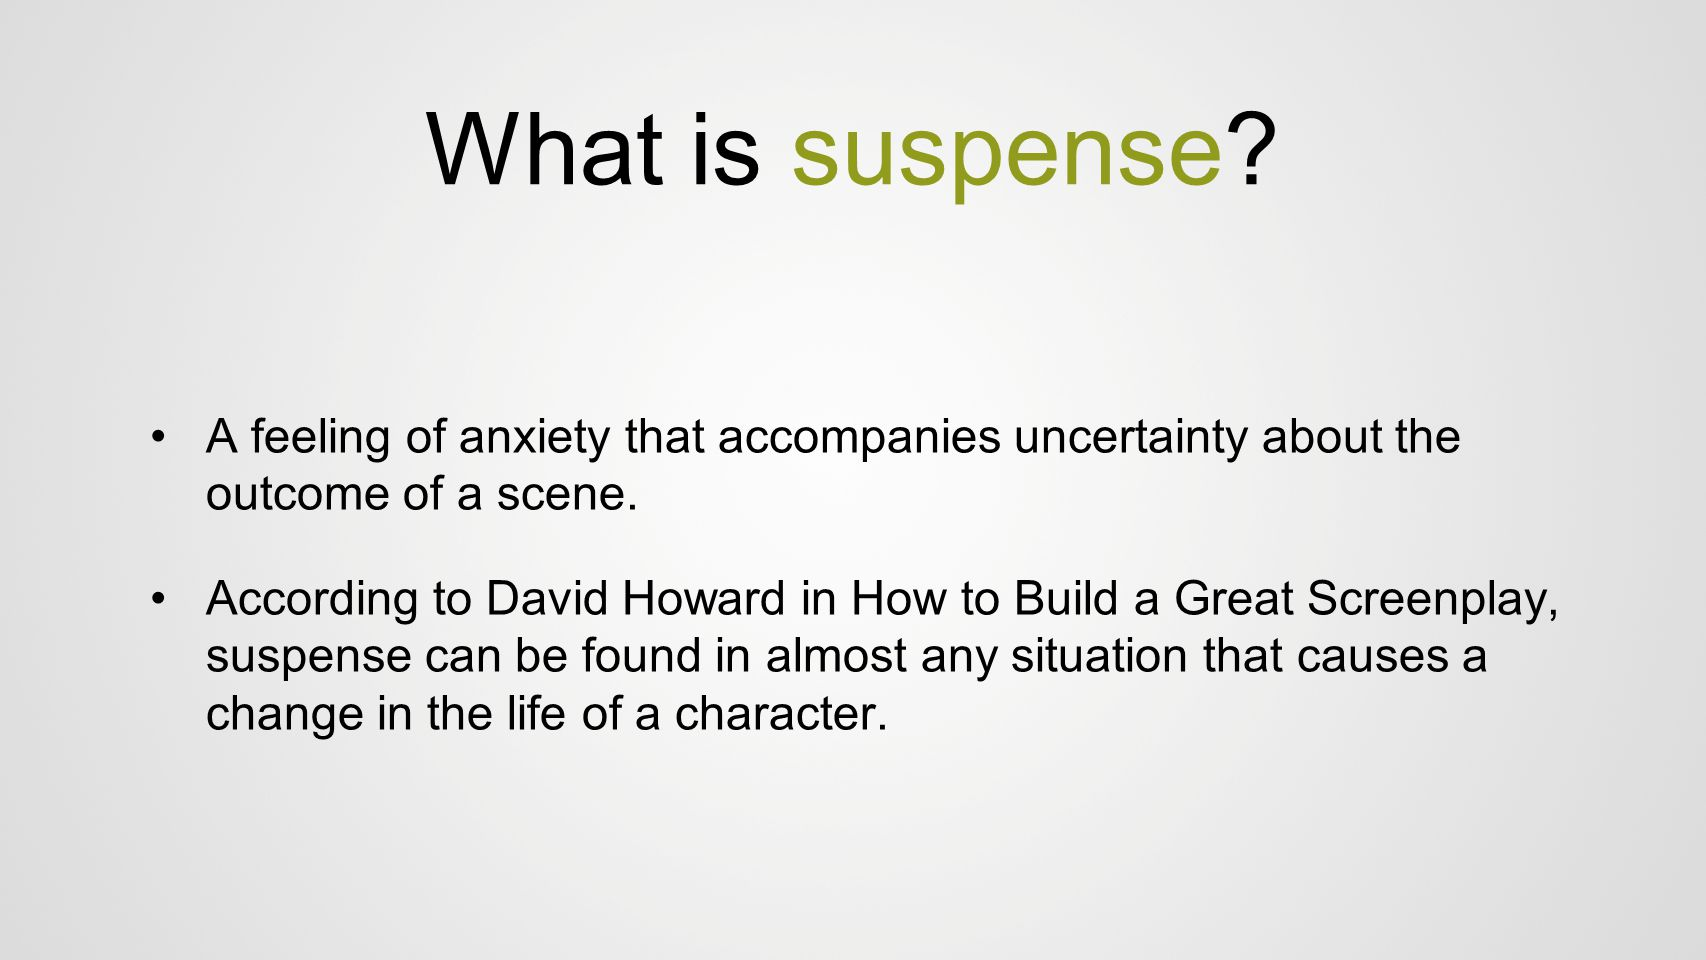 What is suspense? A feeling of anxiety that accompanies uncertainty about the outcome of a scene. According to David Howard in How to Build a Great Sc